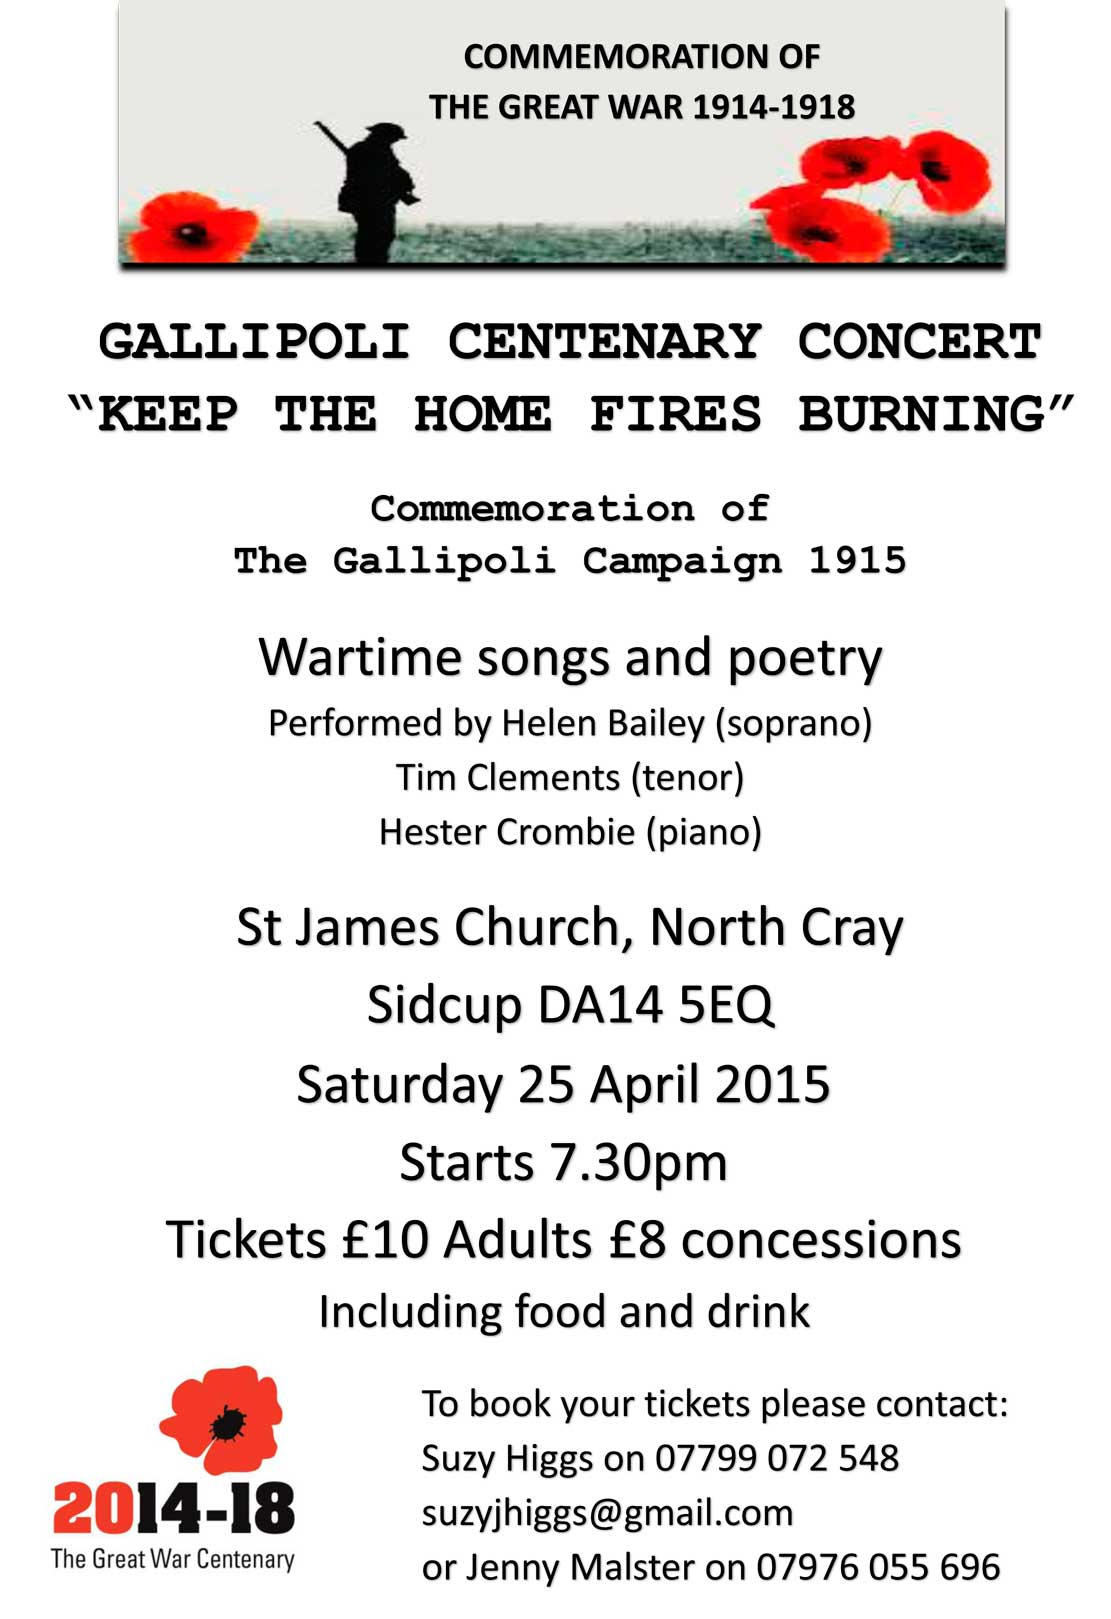 Gallipoli - St James Church, North Cray